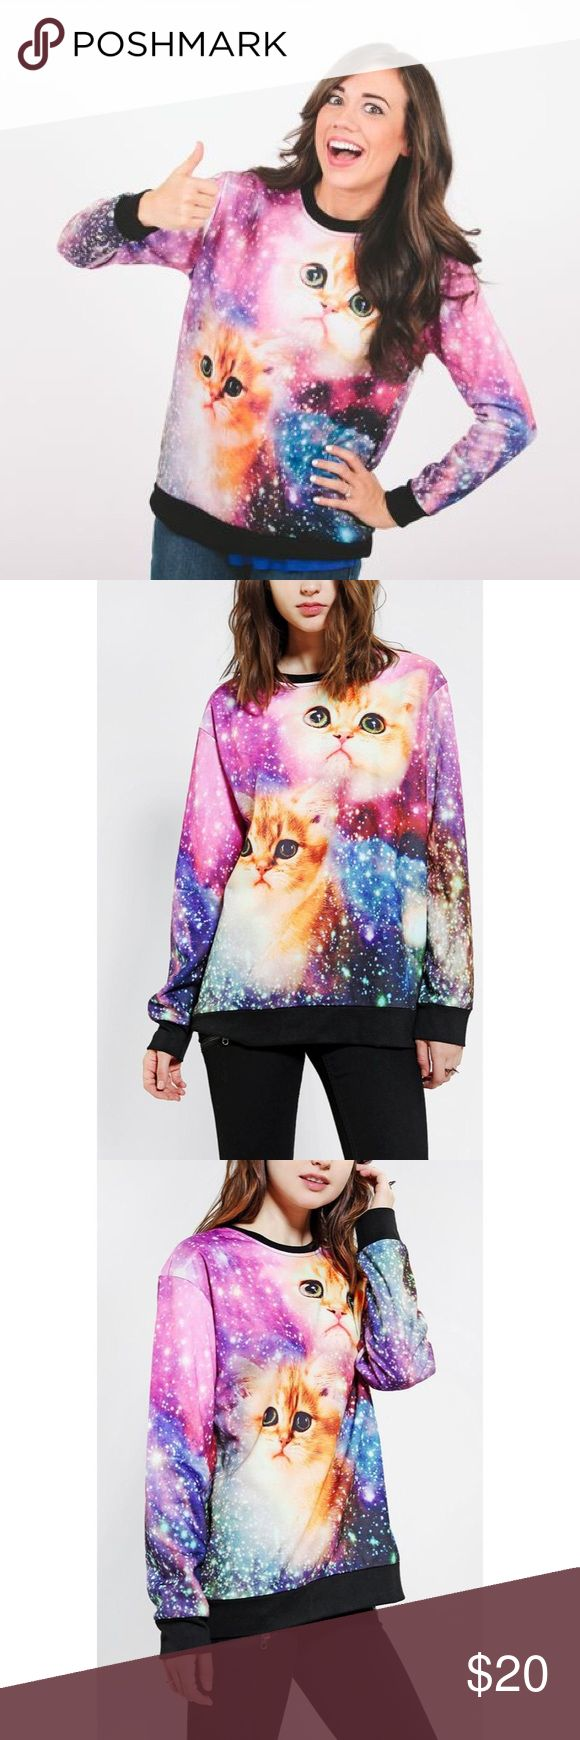 NEW Urban Outfitters Galaxy Cat Sweater NEW Urban Outfitters crew neck sweater. You're most likely already super awesome, so take it to the next level with this gem. It is an oversized fit, so perfect with leggings or a mini and some funky tights. Urban Outfitters Sweaters Crew & Scoop Necks